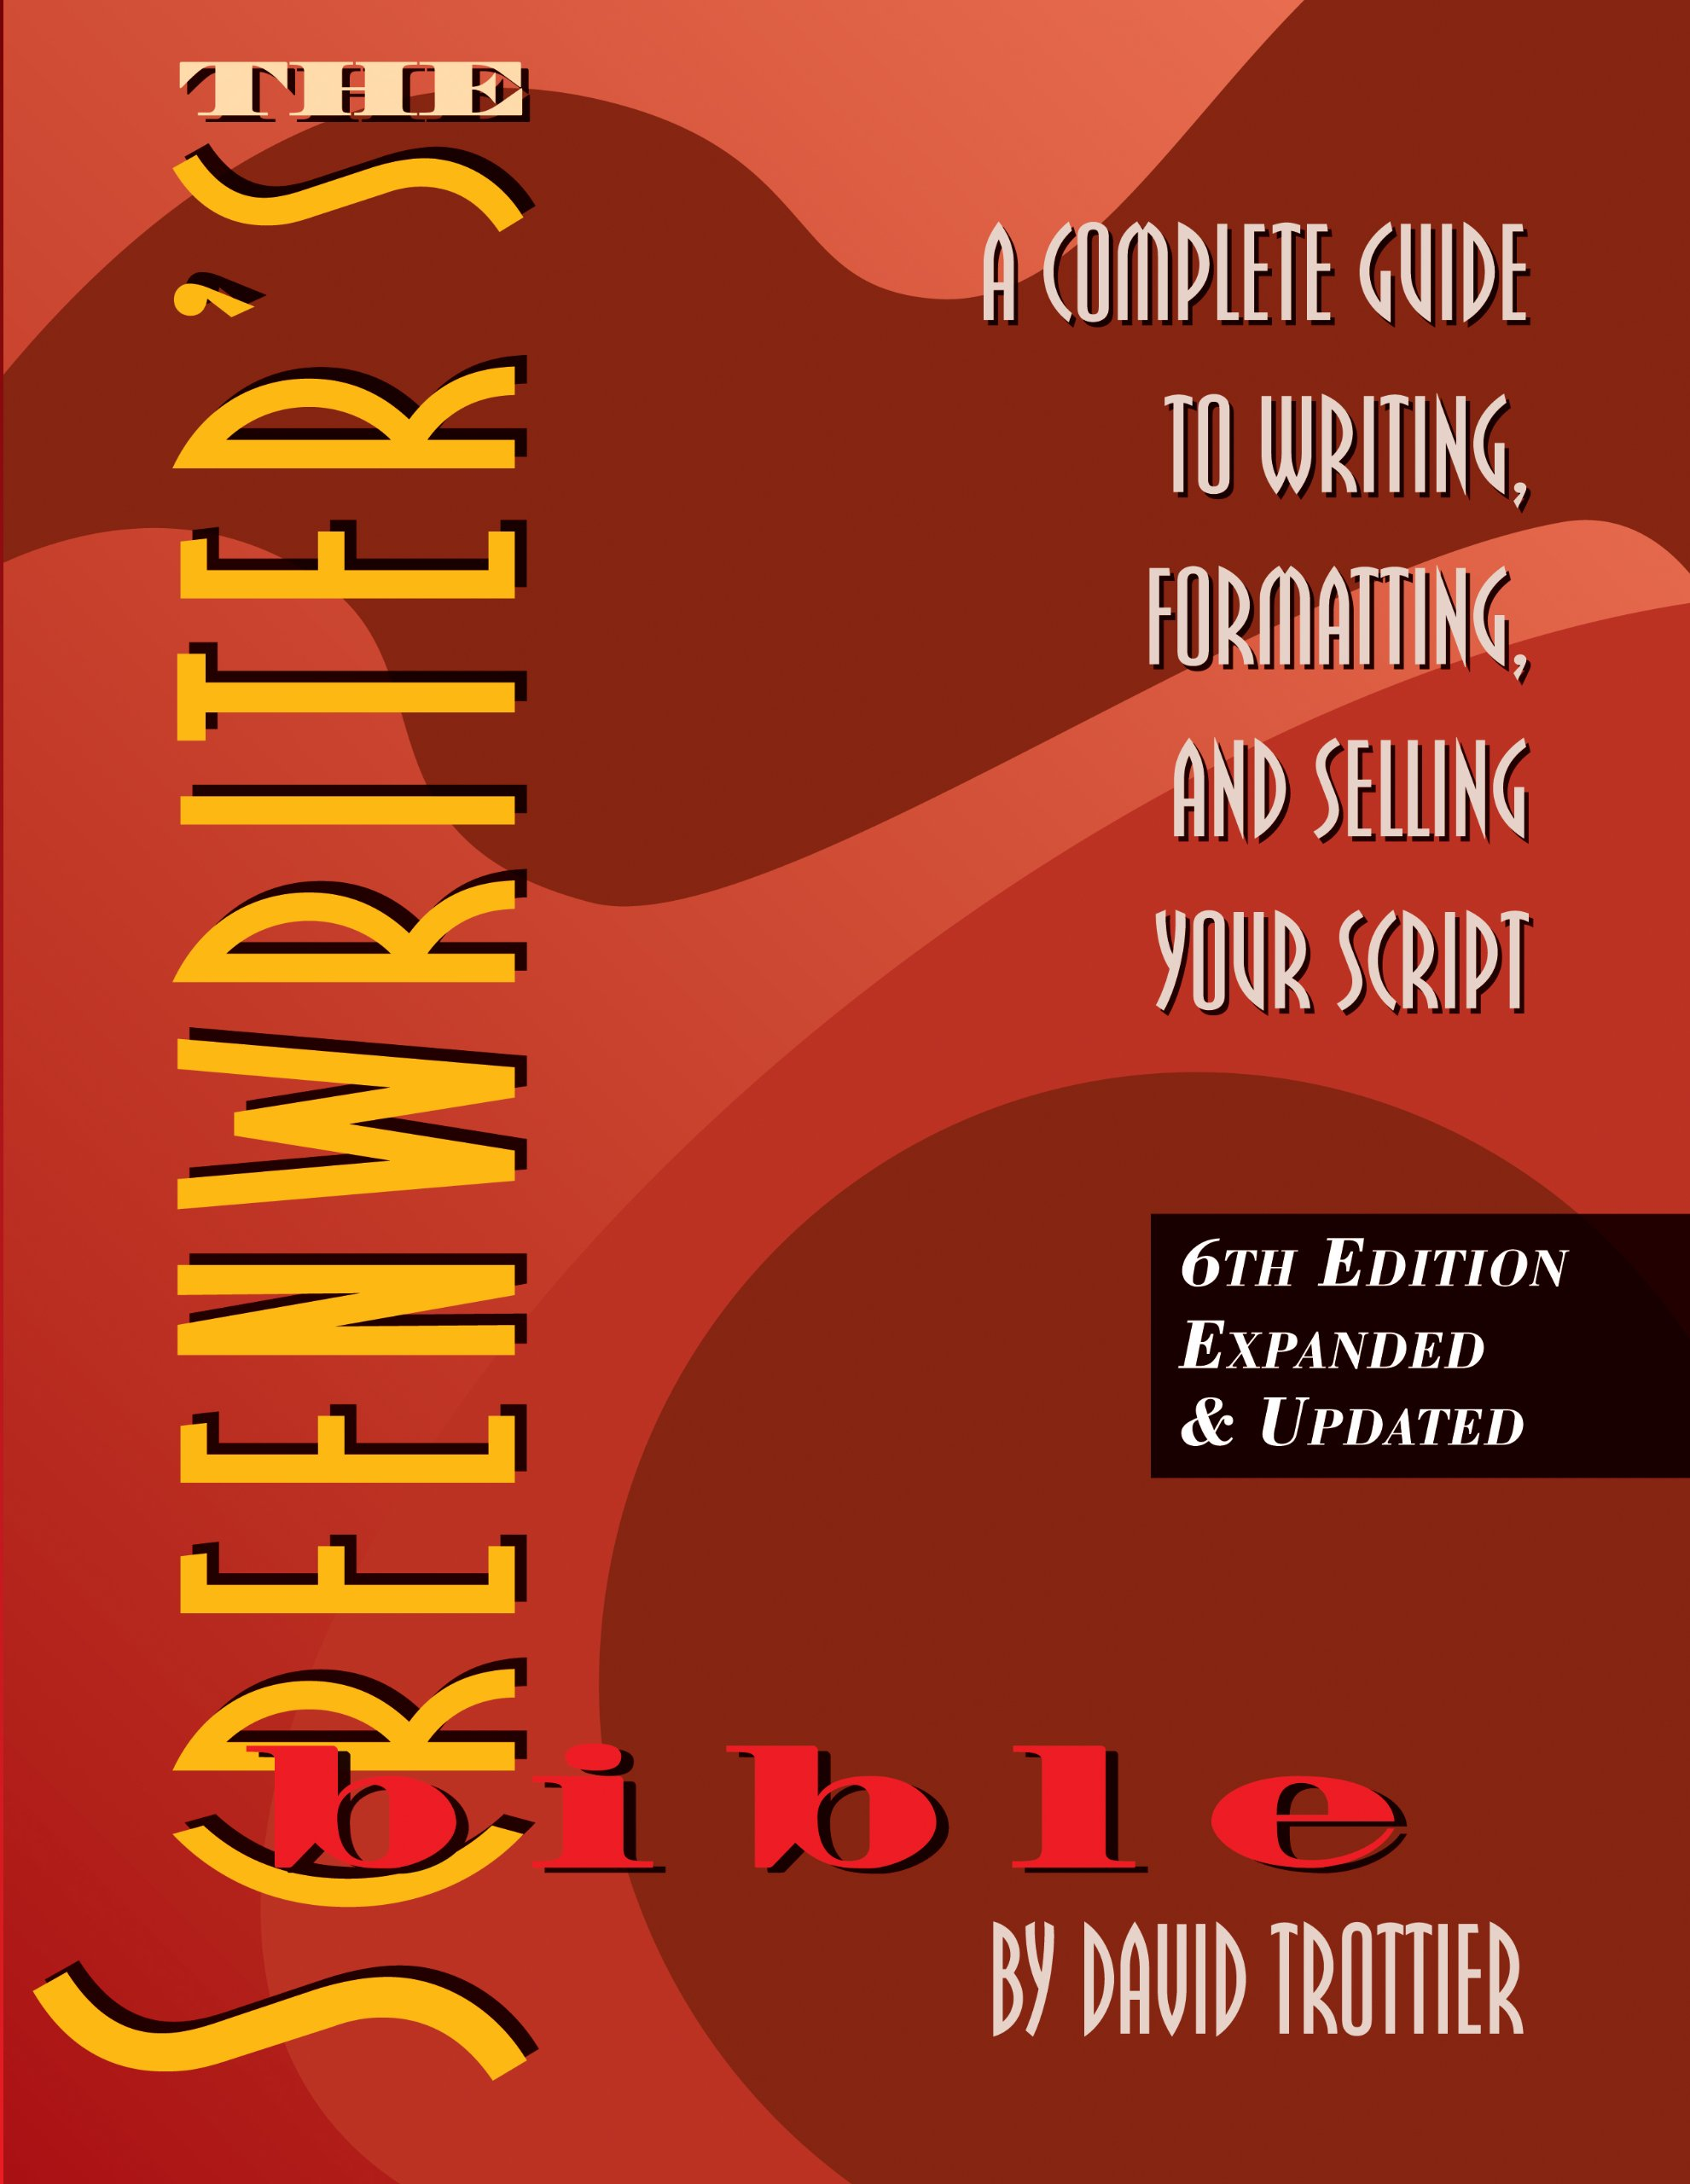 Buy screenwriters bible a complete guide to writing formatting buy screenwriters bible a complete guide to writing formatting selling your script book online at low prices in india screenwriters bible a fandeluxe Choice Image